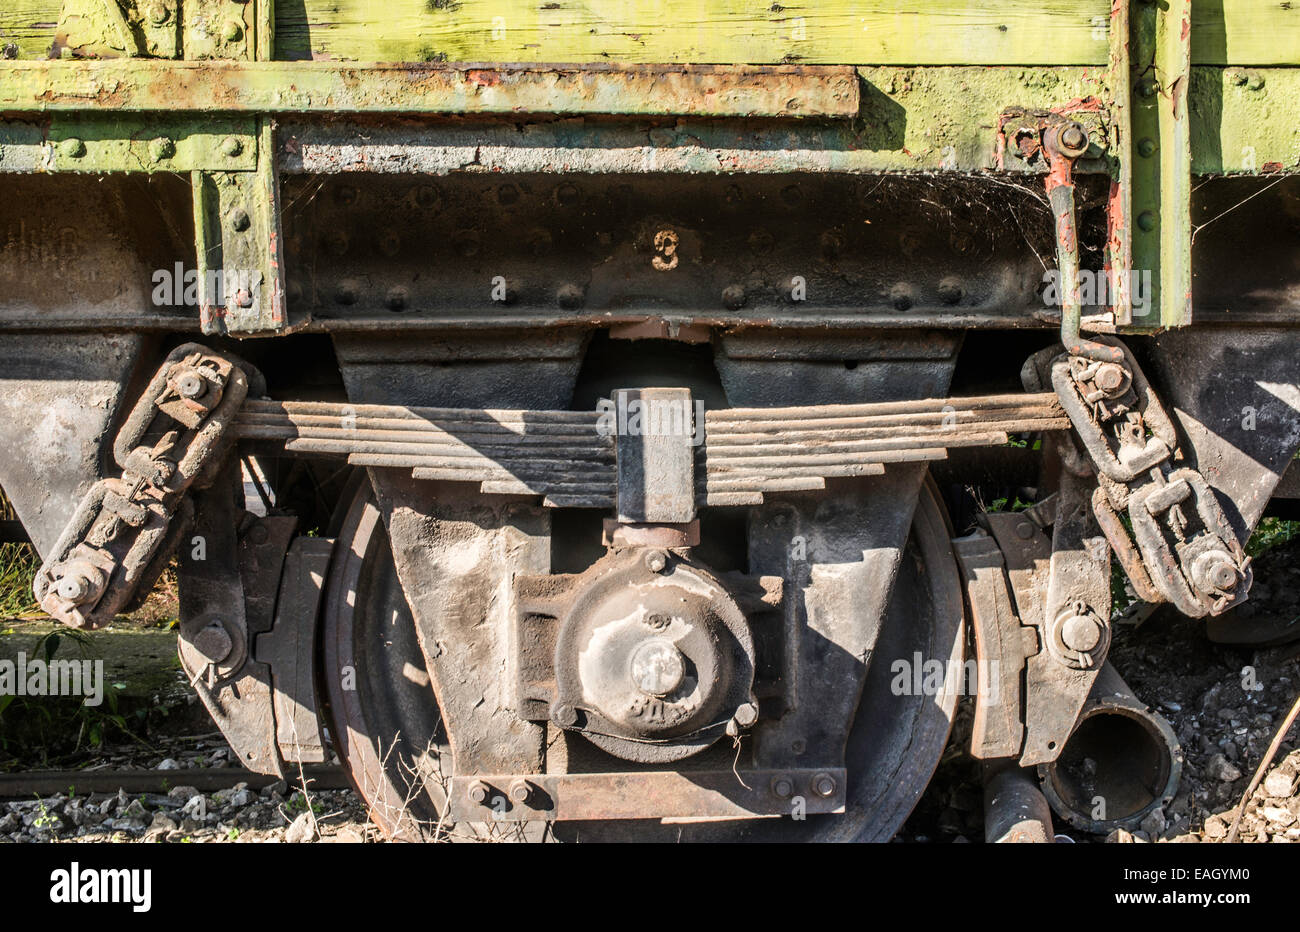 Old Green Wooden Train Wagon Stock Photo, Royalty Free